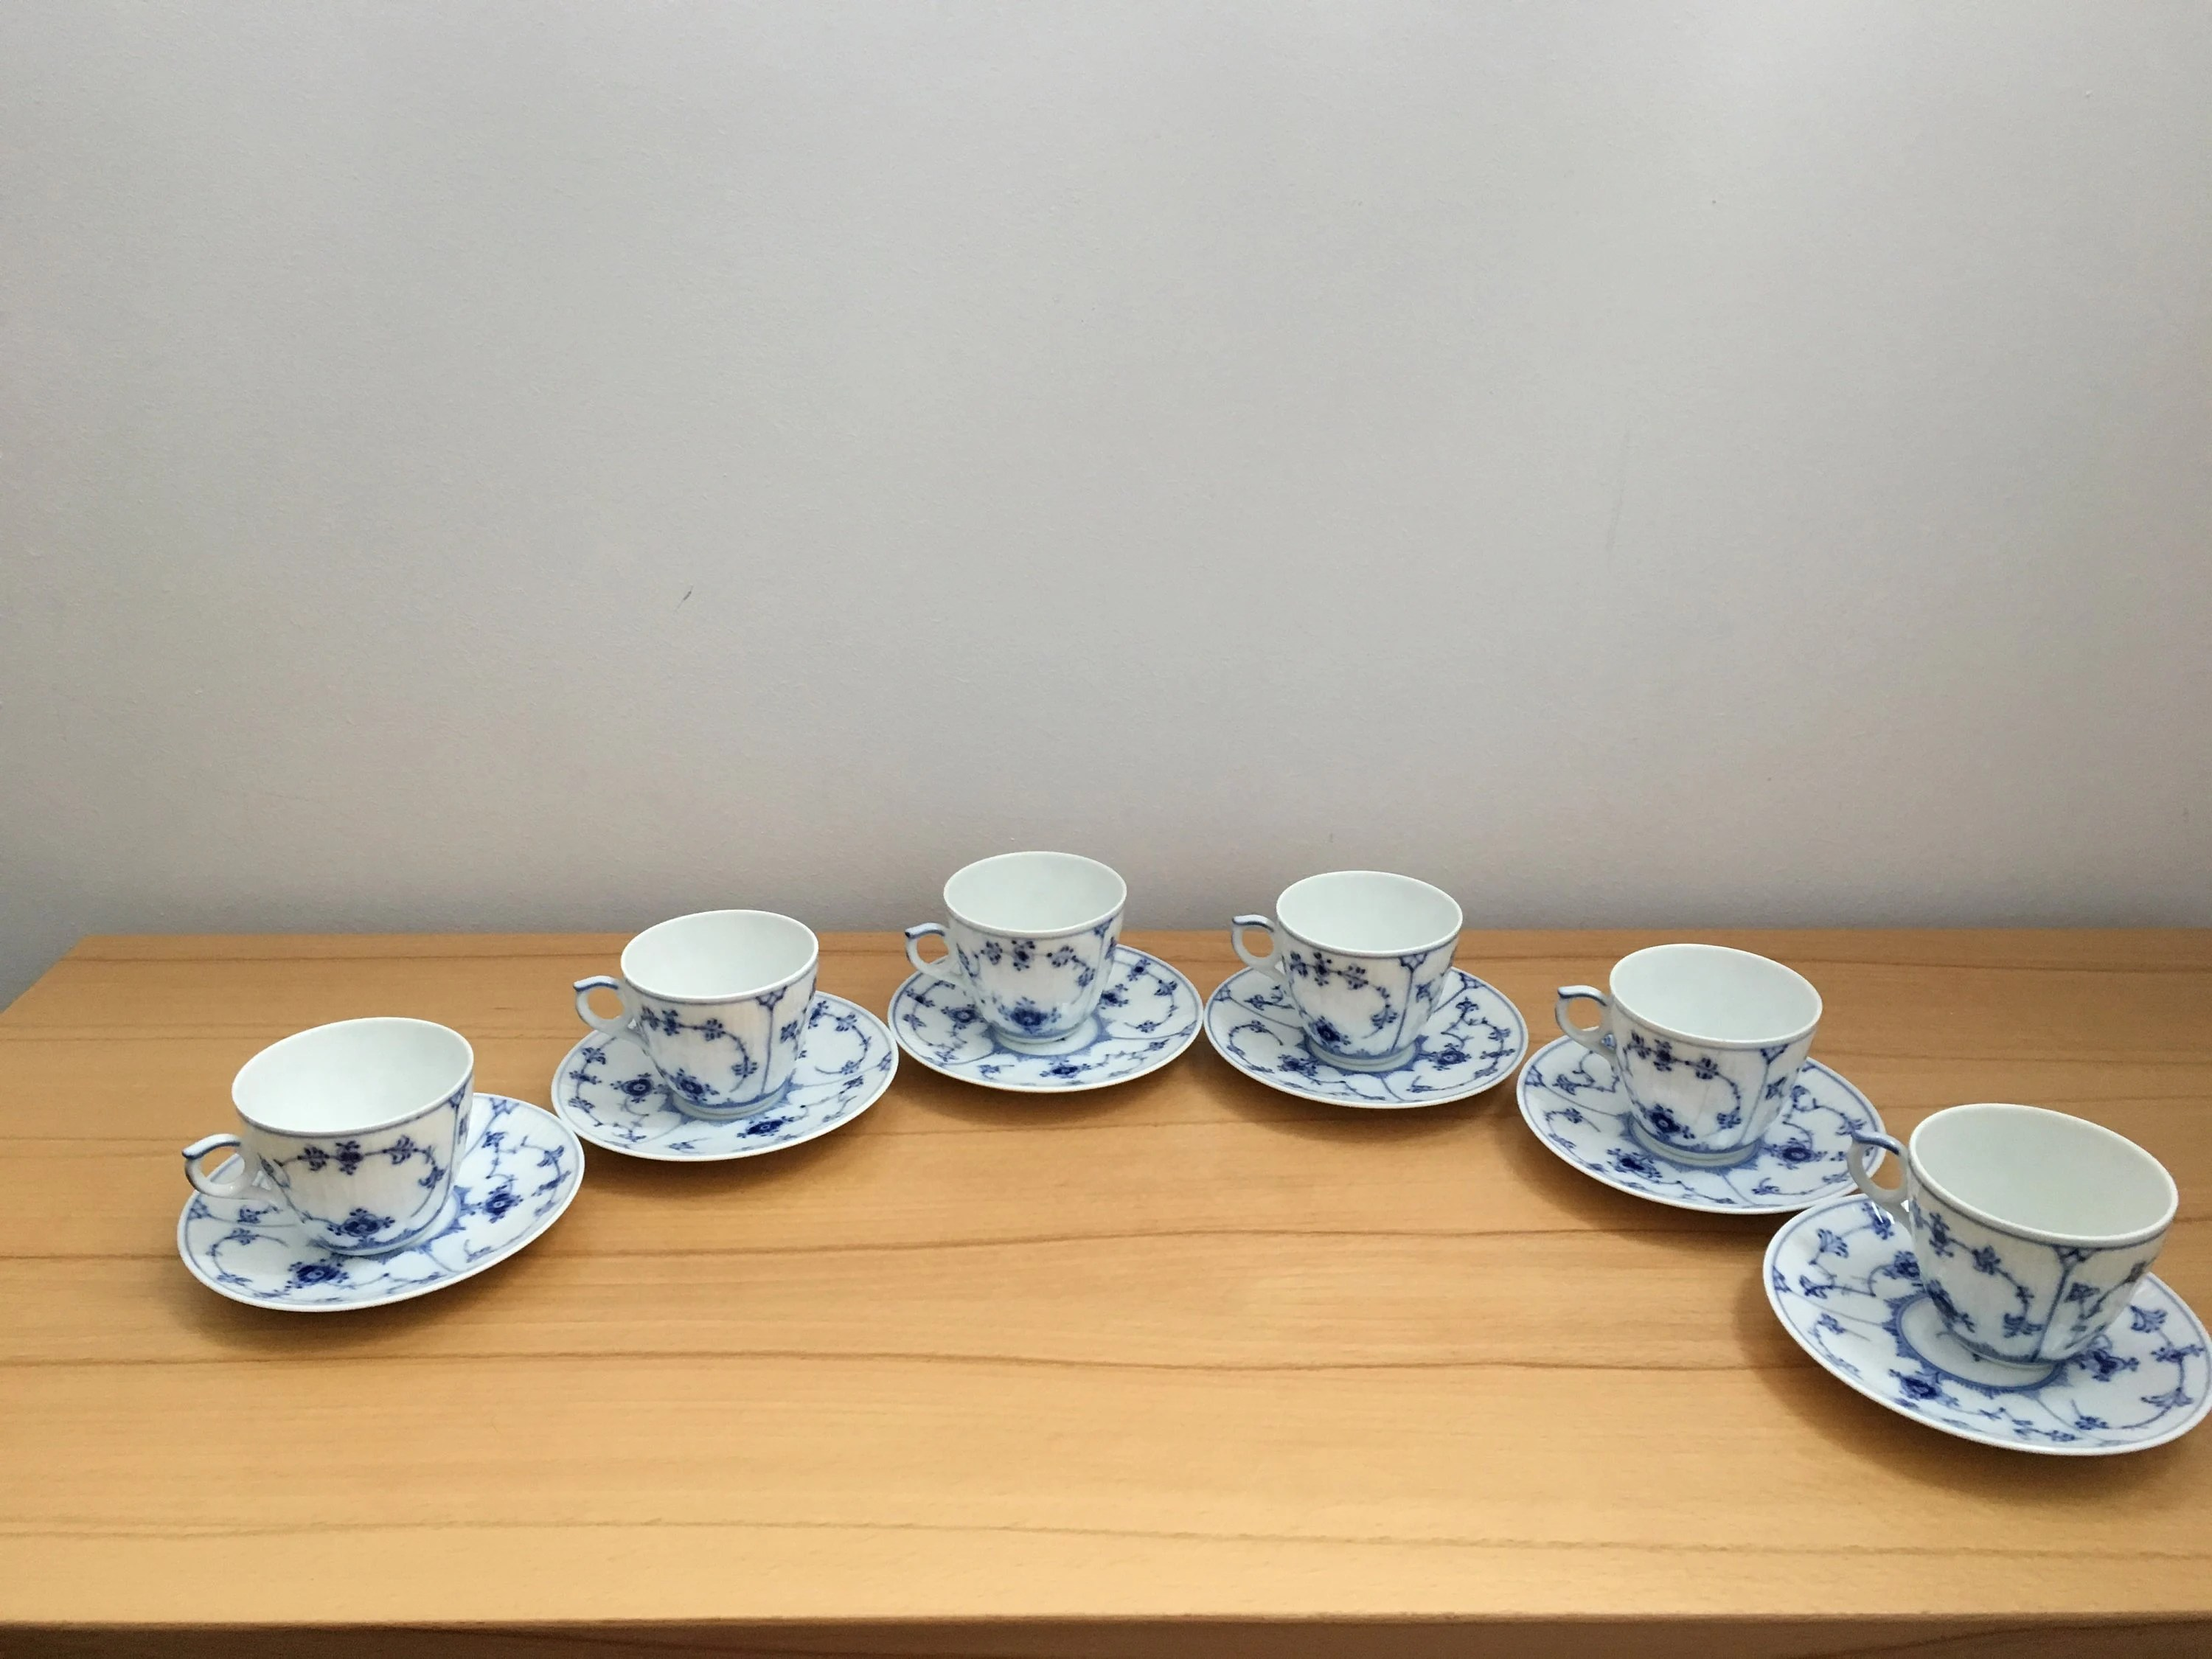 Royal Copenhagen Geschirr Royal Copenhagen Blue Fluted Coffee Cup And Saucer Plain Espresso Cup Danish Vintage Porcelain Musselmalet Cup And Saucer Denmark